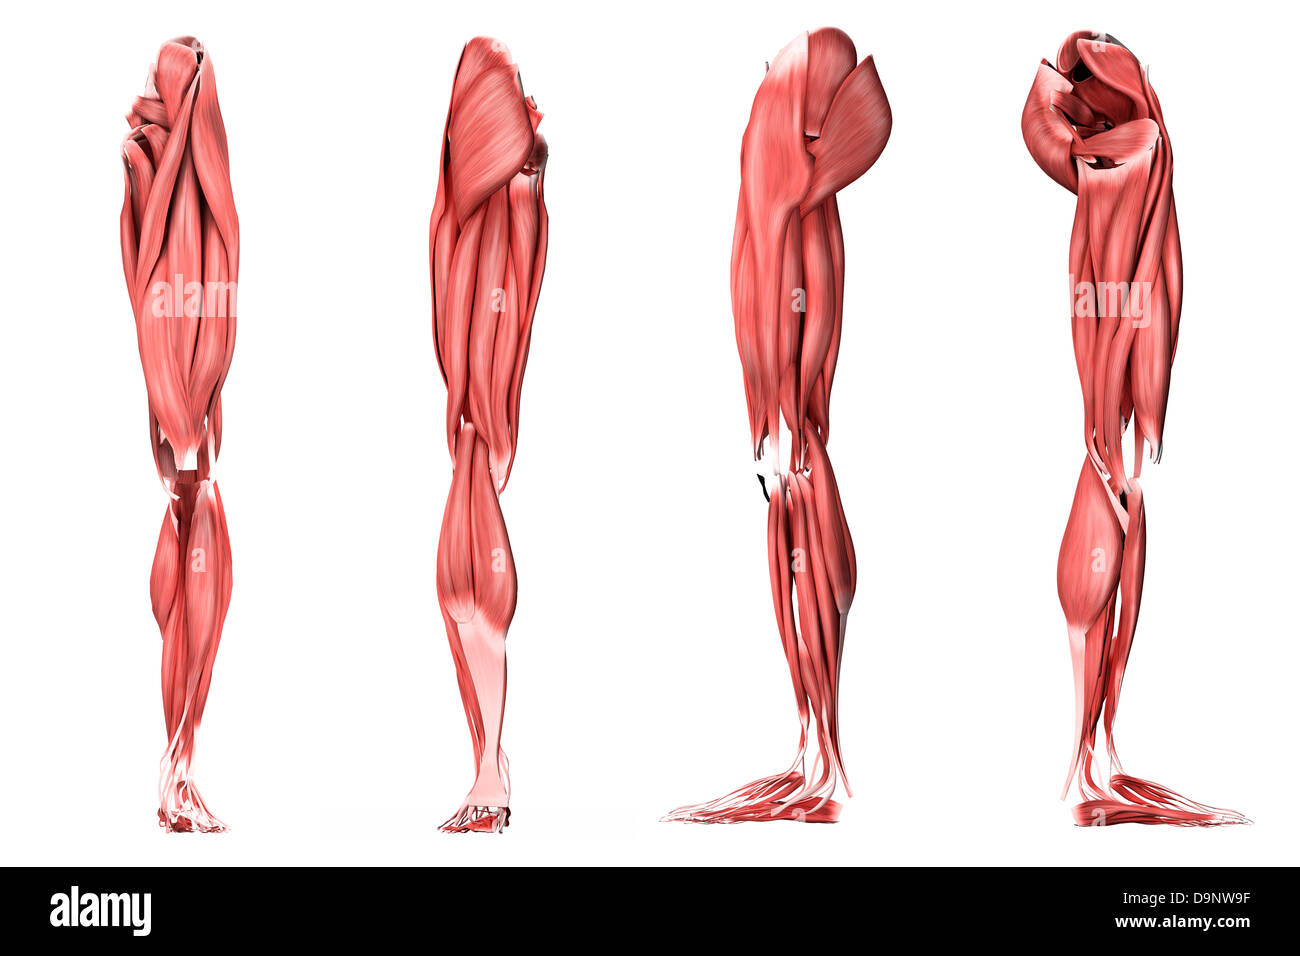 Medical Illustration Of Human Leg Muscles Four Side Views